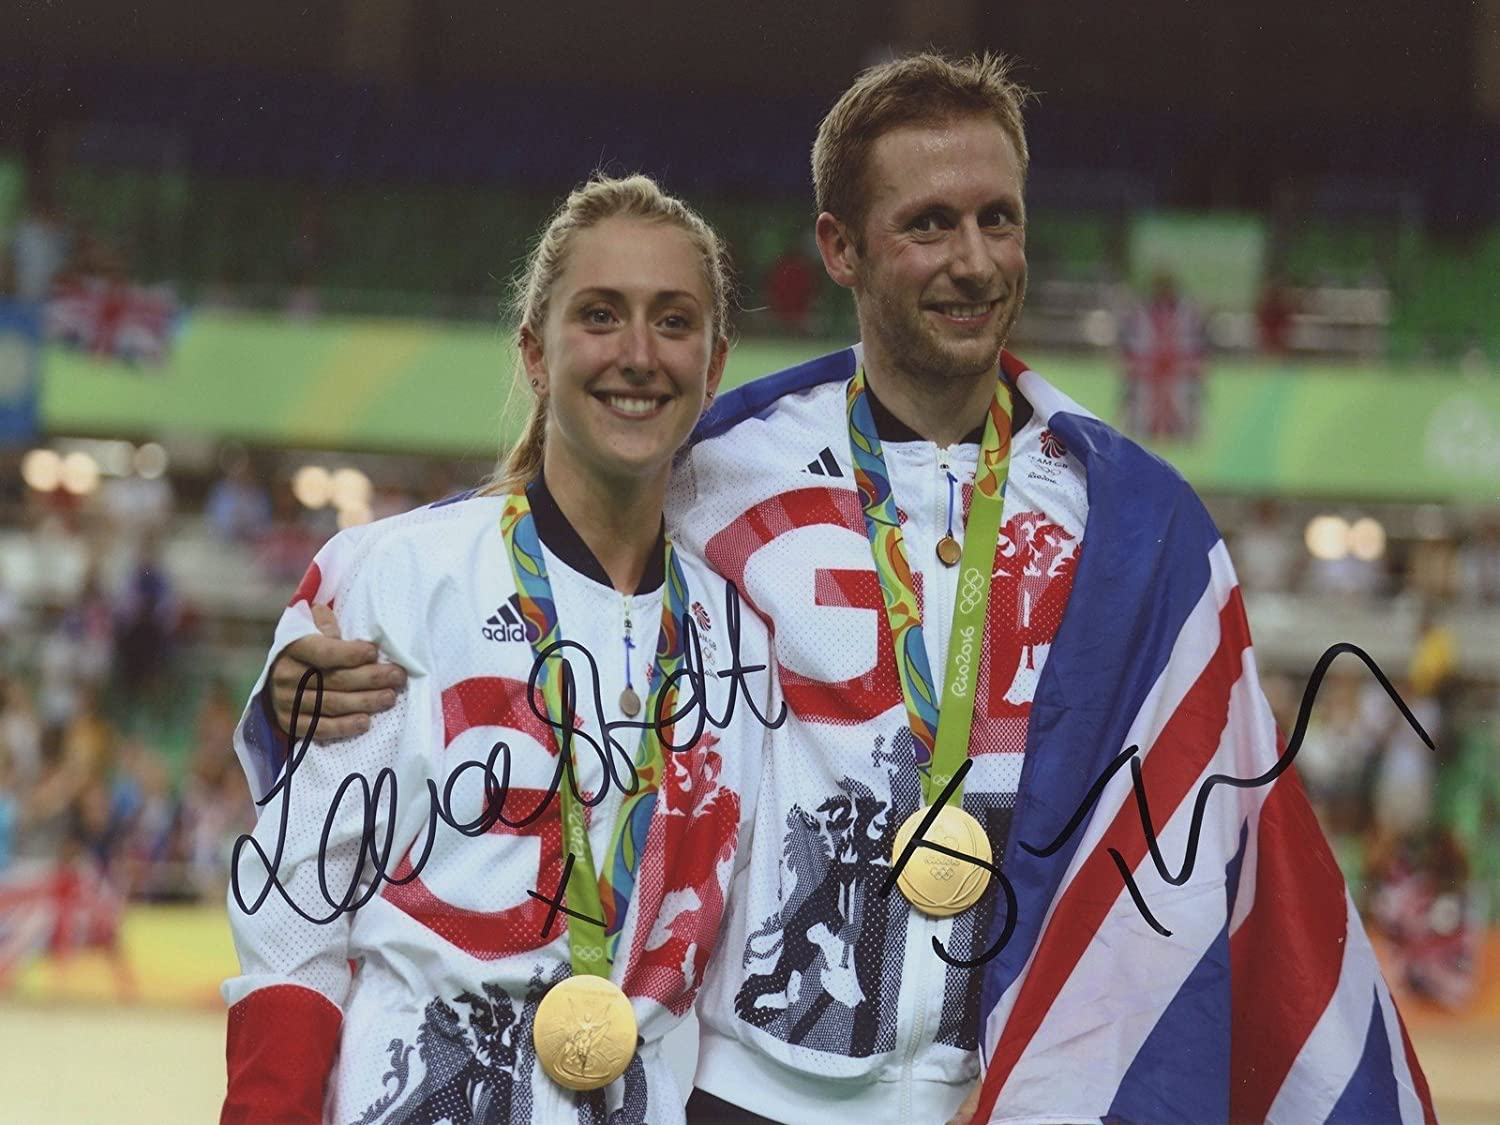 Laura Trott & Jason Kenny Rio 2016 Olympische Hand Signed 12 x 8 Photo img012authentic + Echtheitszertifikat